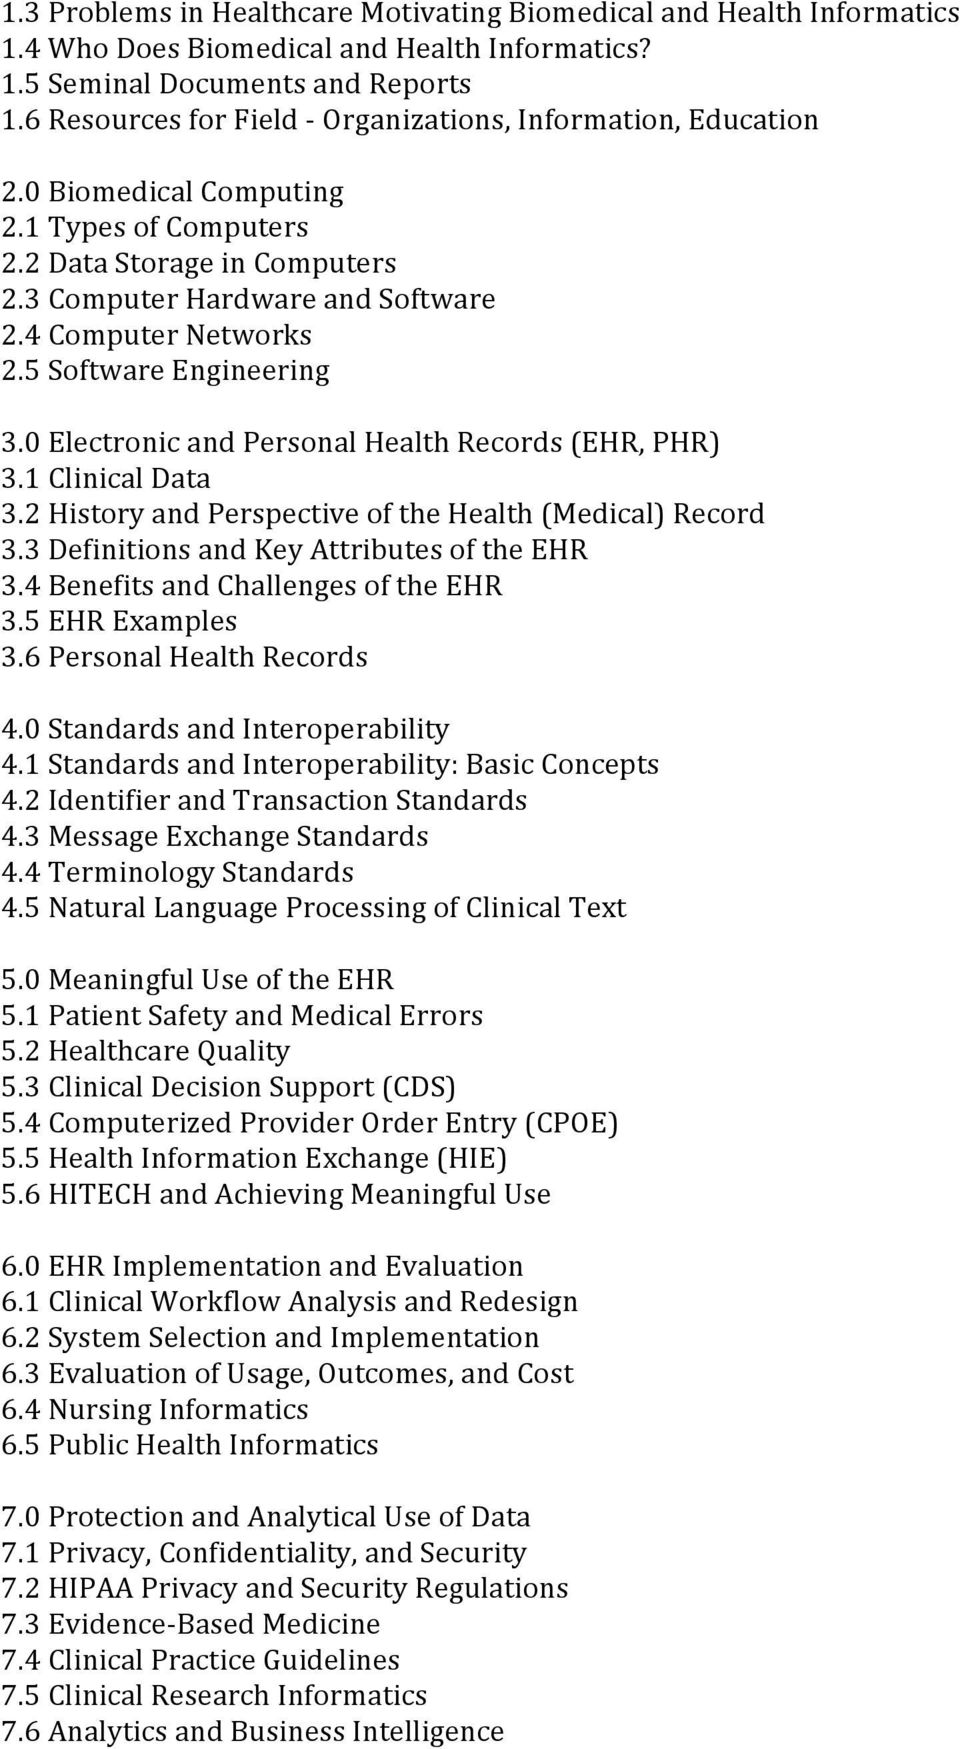 1 Clinical Data 3.2 History and Perspective of the Health (Medical) Record 3.3 Definitions and Key Attributes of the EHR 3.4 Benefits and Challenges of the EHR 3.5 EHR Examples 3.